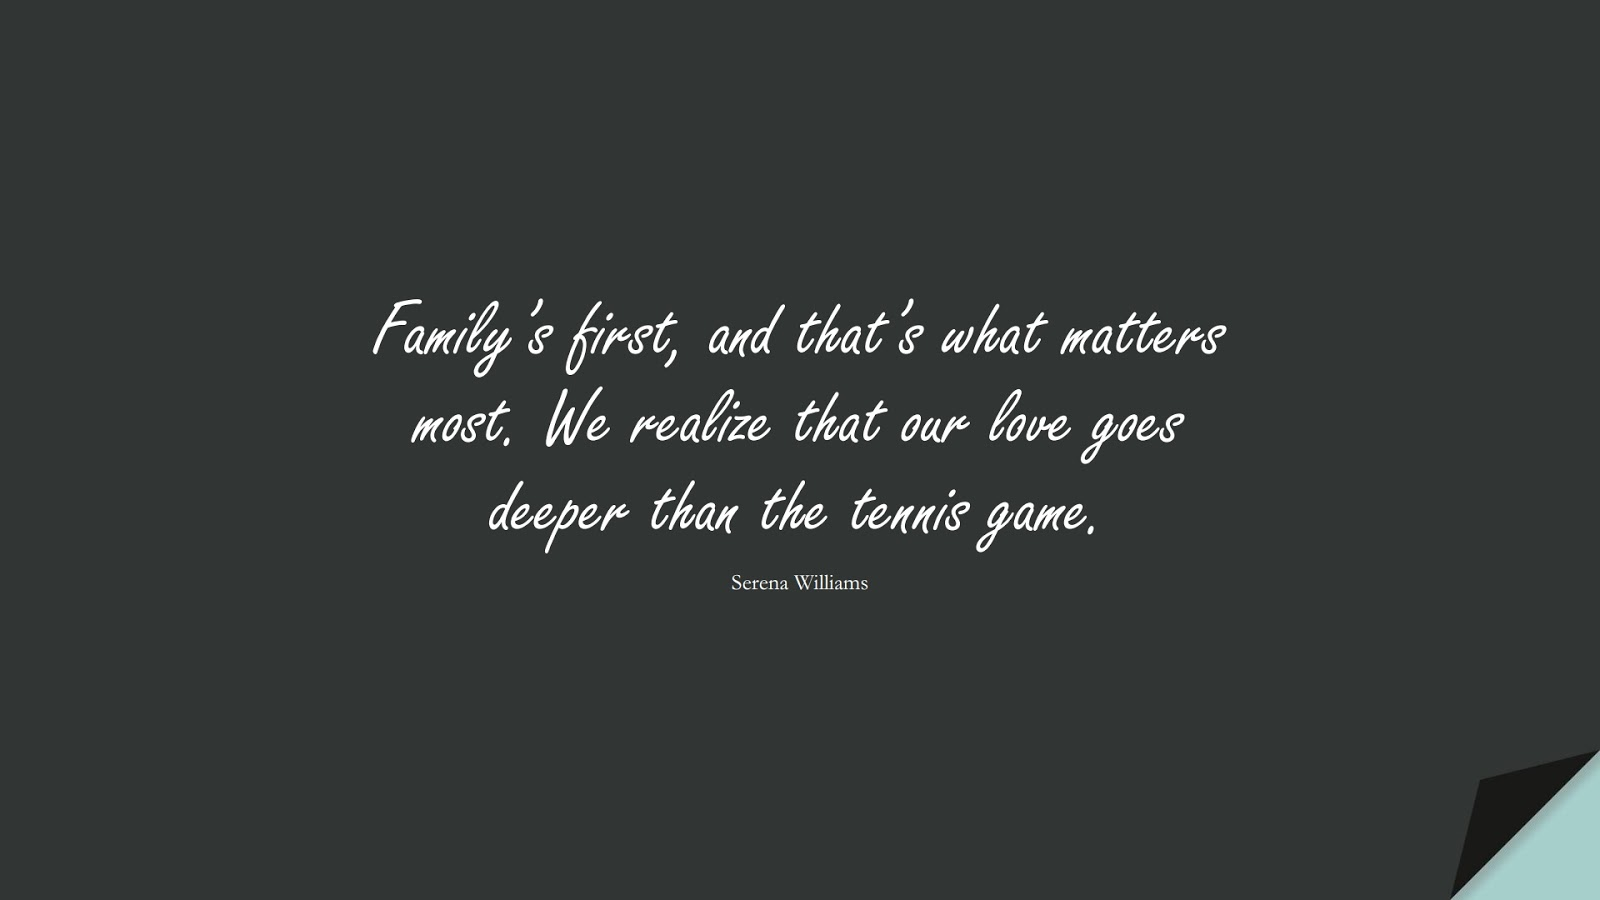 Family's first, and that's what matters most. We realize that our love goes deeper than the tennis game. (Serena Williams);  #FamilyQuotes